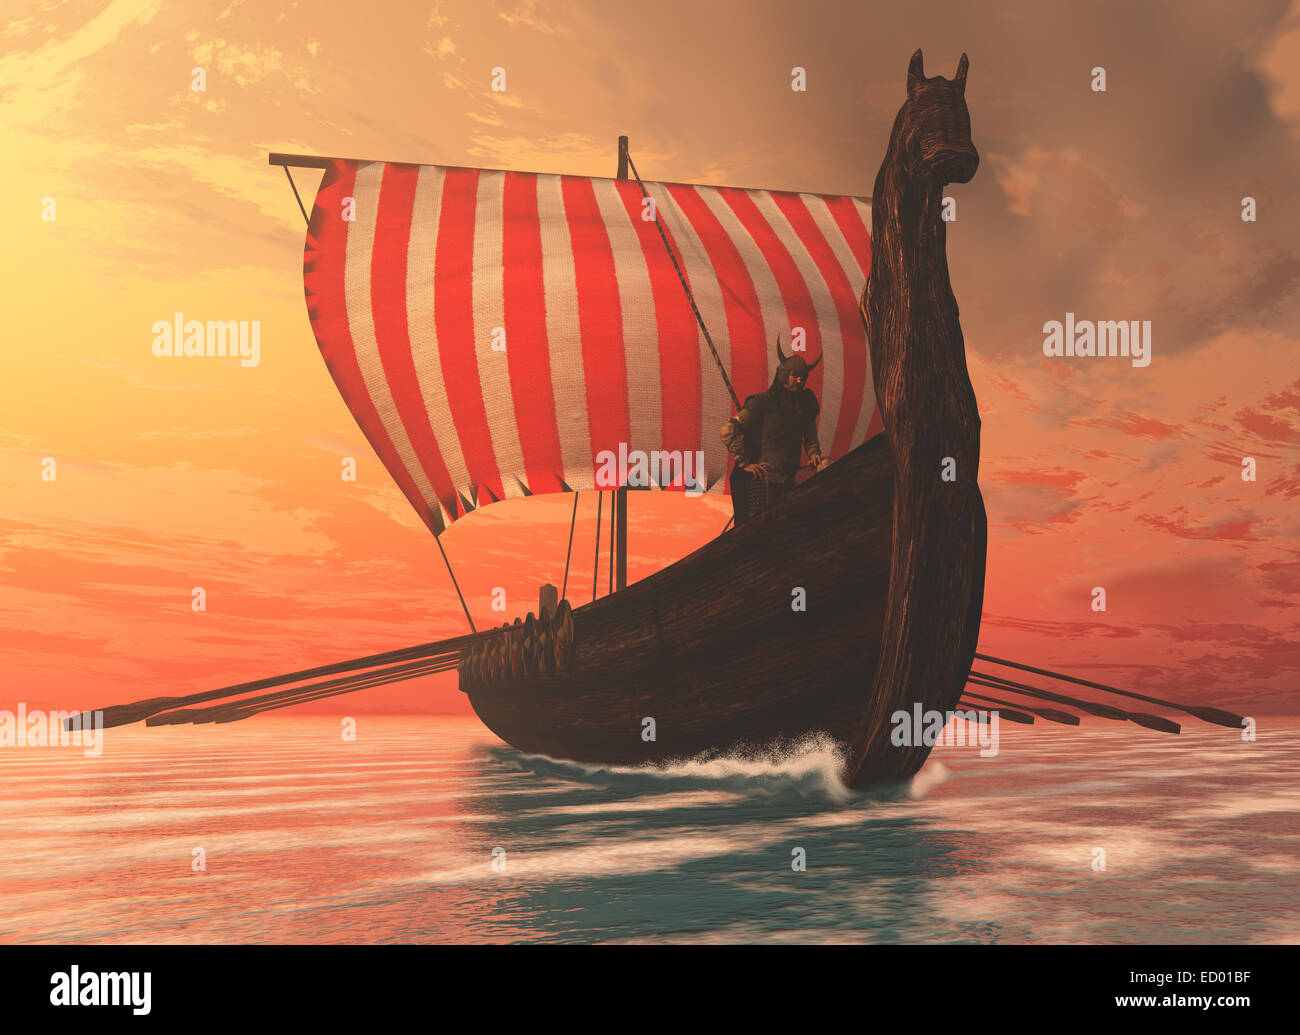 A Viking longboat sails to new shores for trading and companionship. - Stock Image